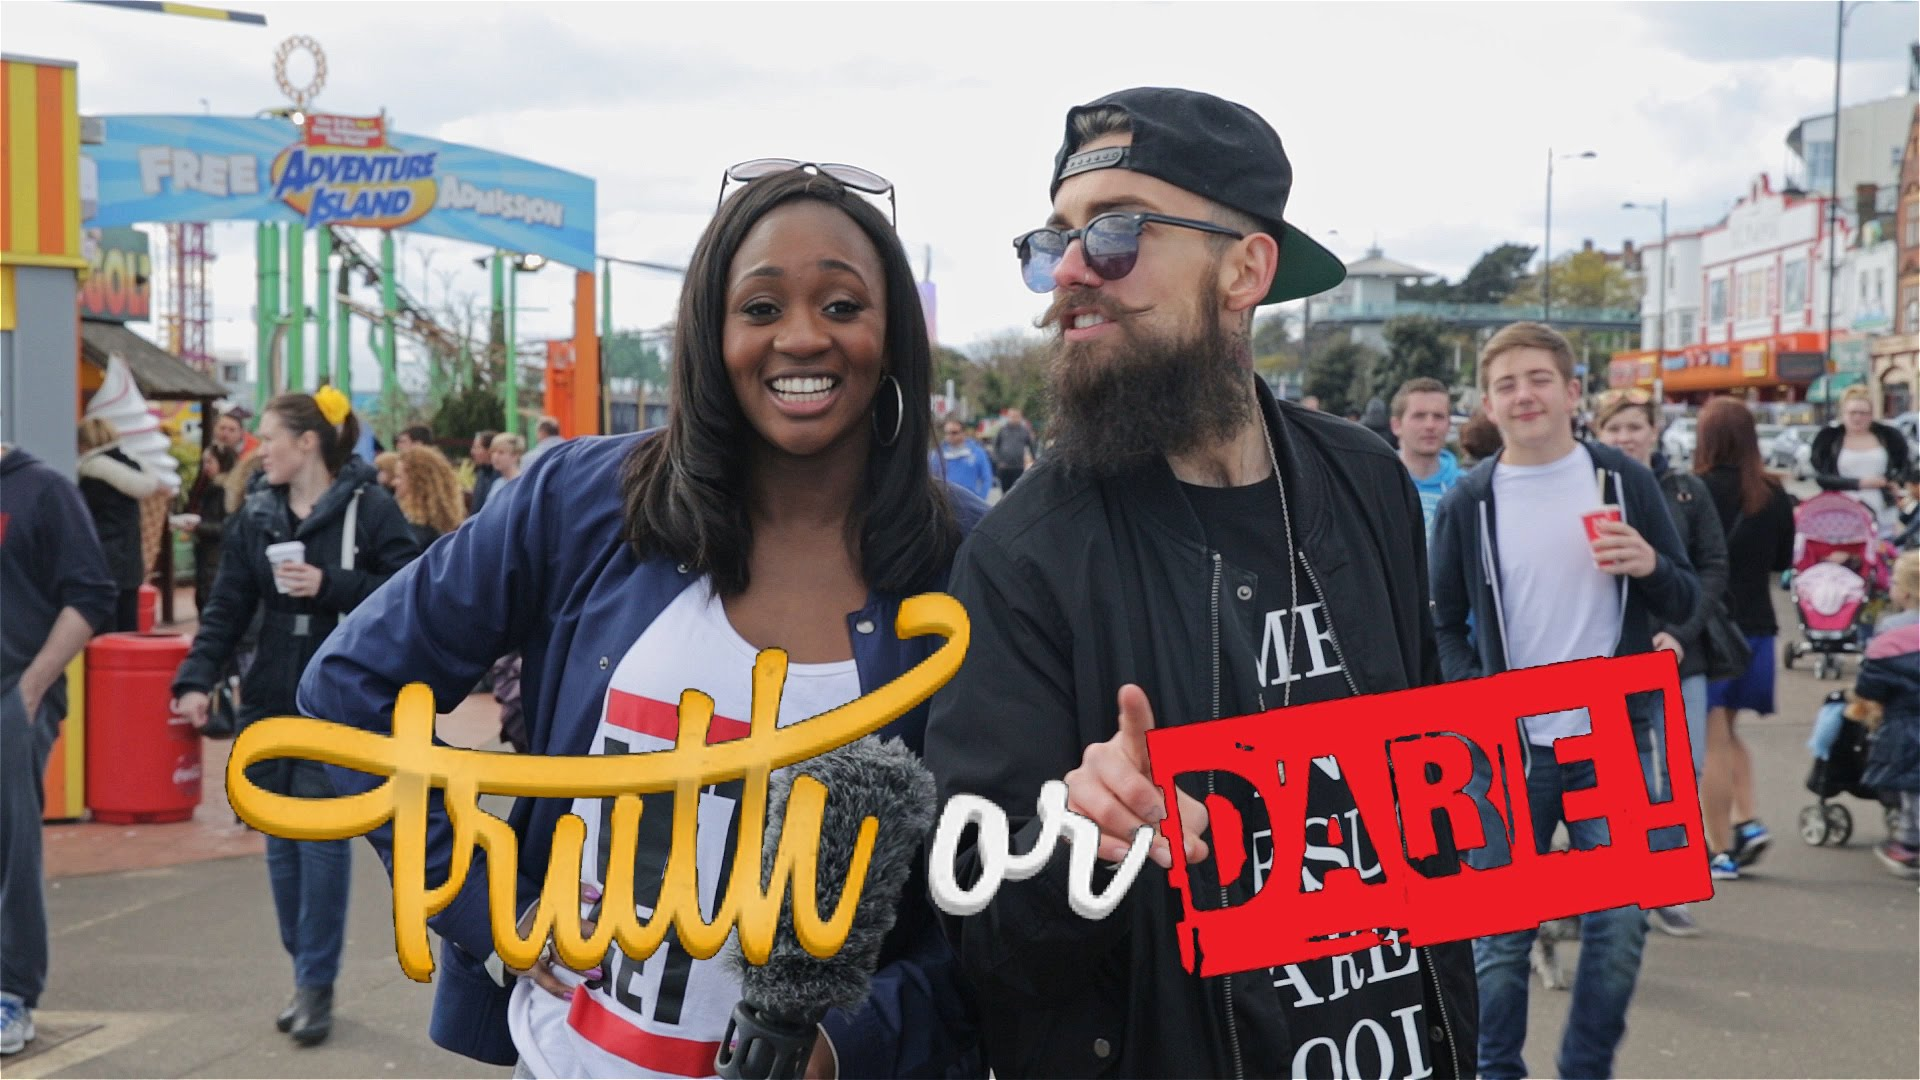 Watch the brand new series of Truth Or Dare TV with Remel London and Dean Quinton